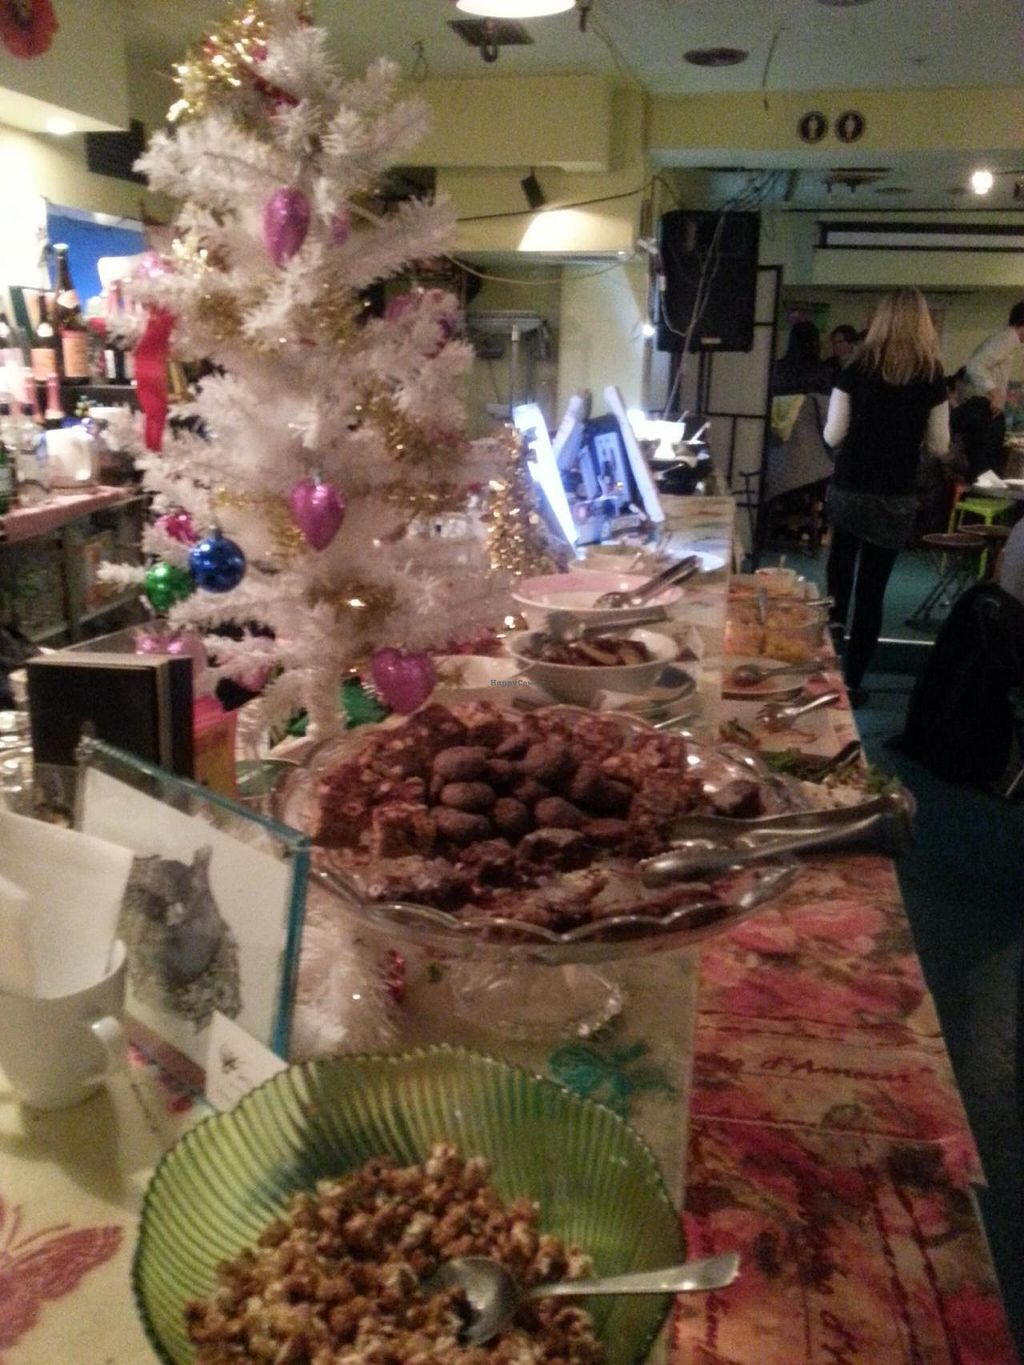 """Photo of The Pink Cow  by <a href=""""/members/profile/frbou"""">frbou</a> <br/>Christmas buffet ! <br/> January 29, 2015  - <a href='/contact/abuse/image/48139/91631'>Report</a>"""